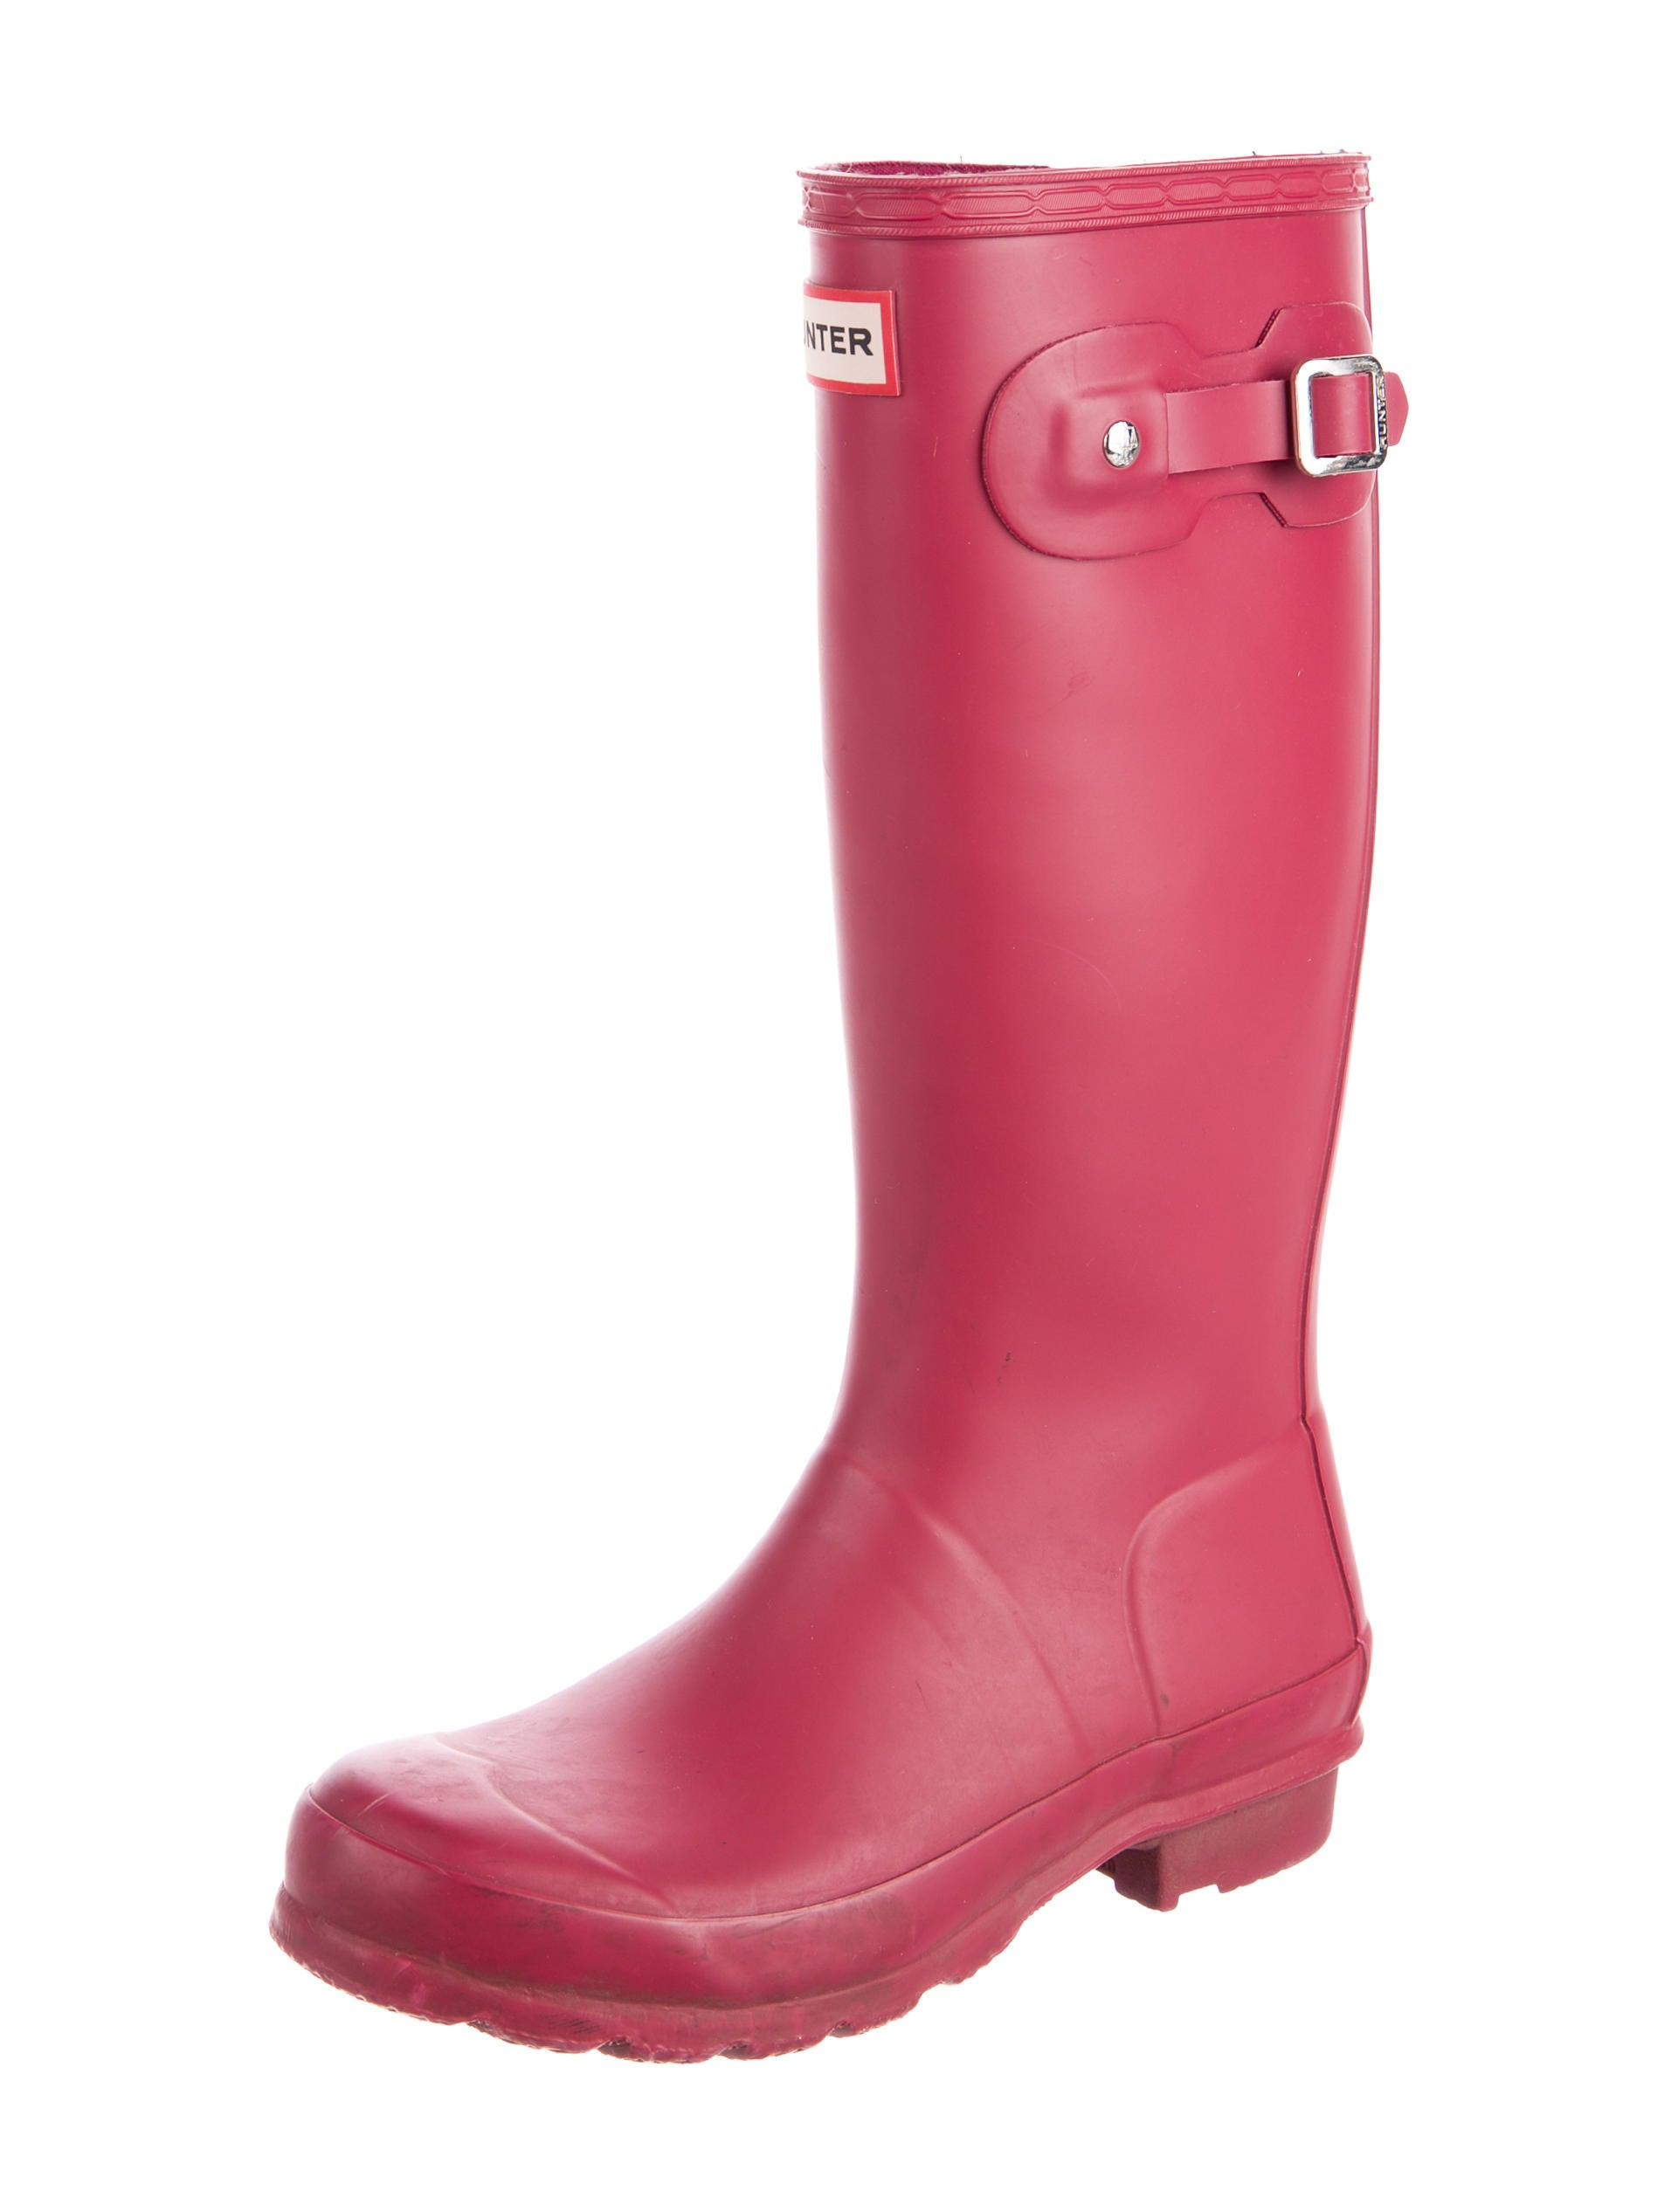 Enjoy free shipping and easy returns every day at Kohl's. Find great deals on Girls Rain Boots at Kohl's today!